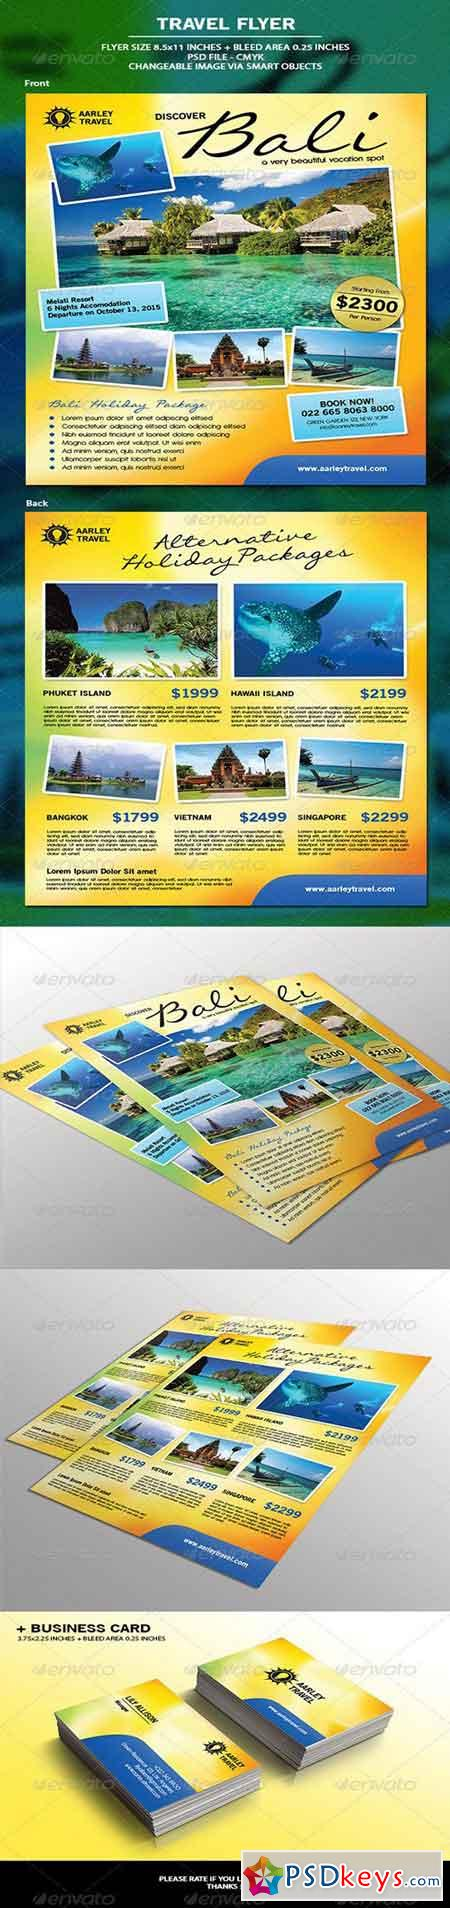 Travel Flyer + Business Card 6867642